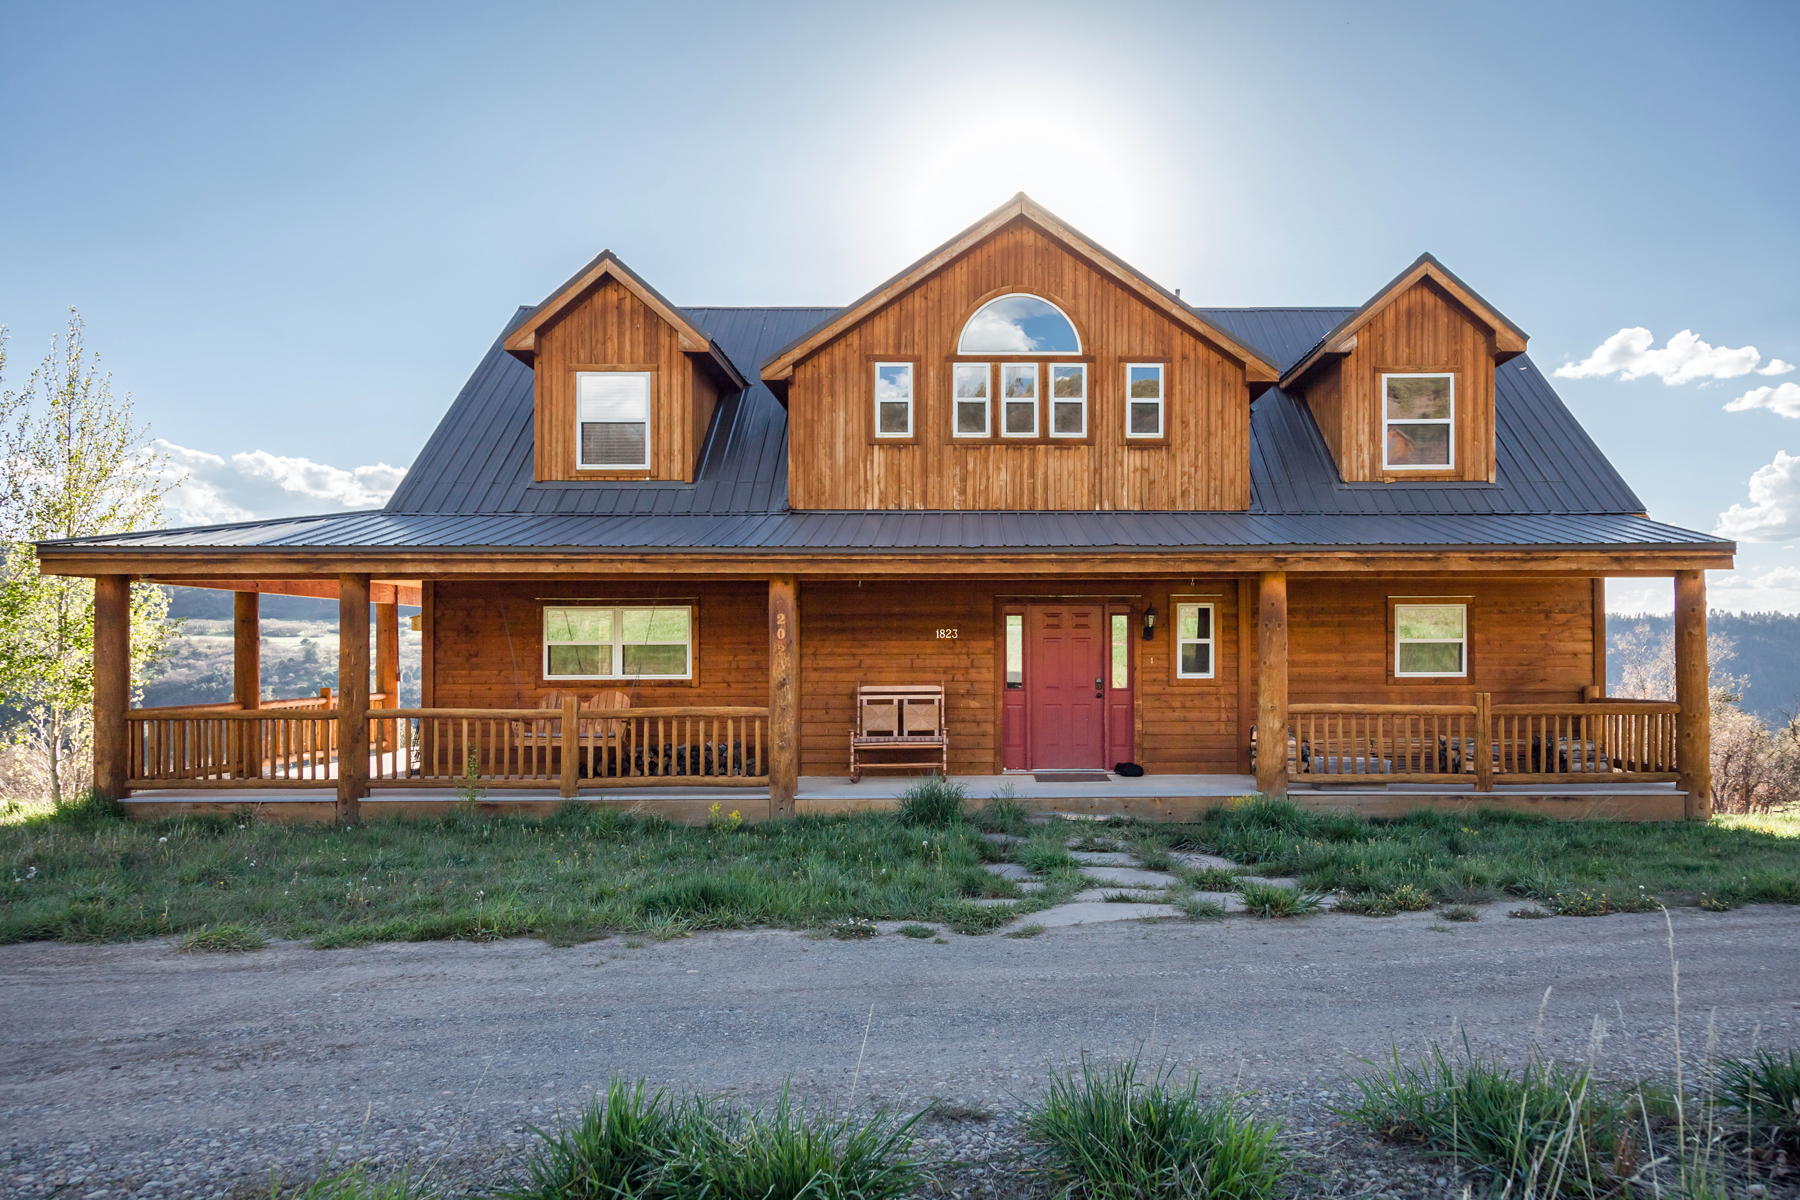 Casa Unifamiliar por un Venta en 1823 Green Meadows Lane Telluride, Colorado, 81435 Estados Unidos